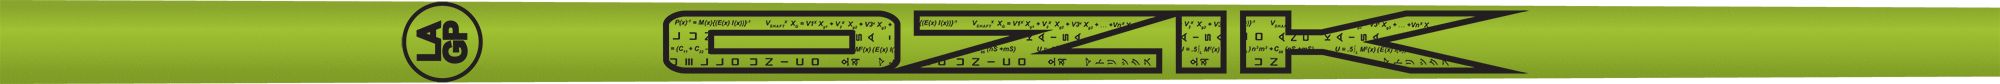 Ozik White Tie: Lime Green Black Matte - Wood 50 A